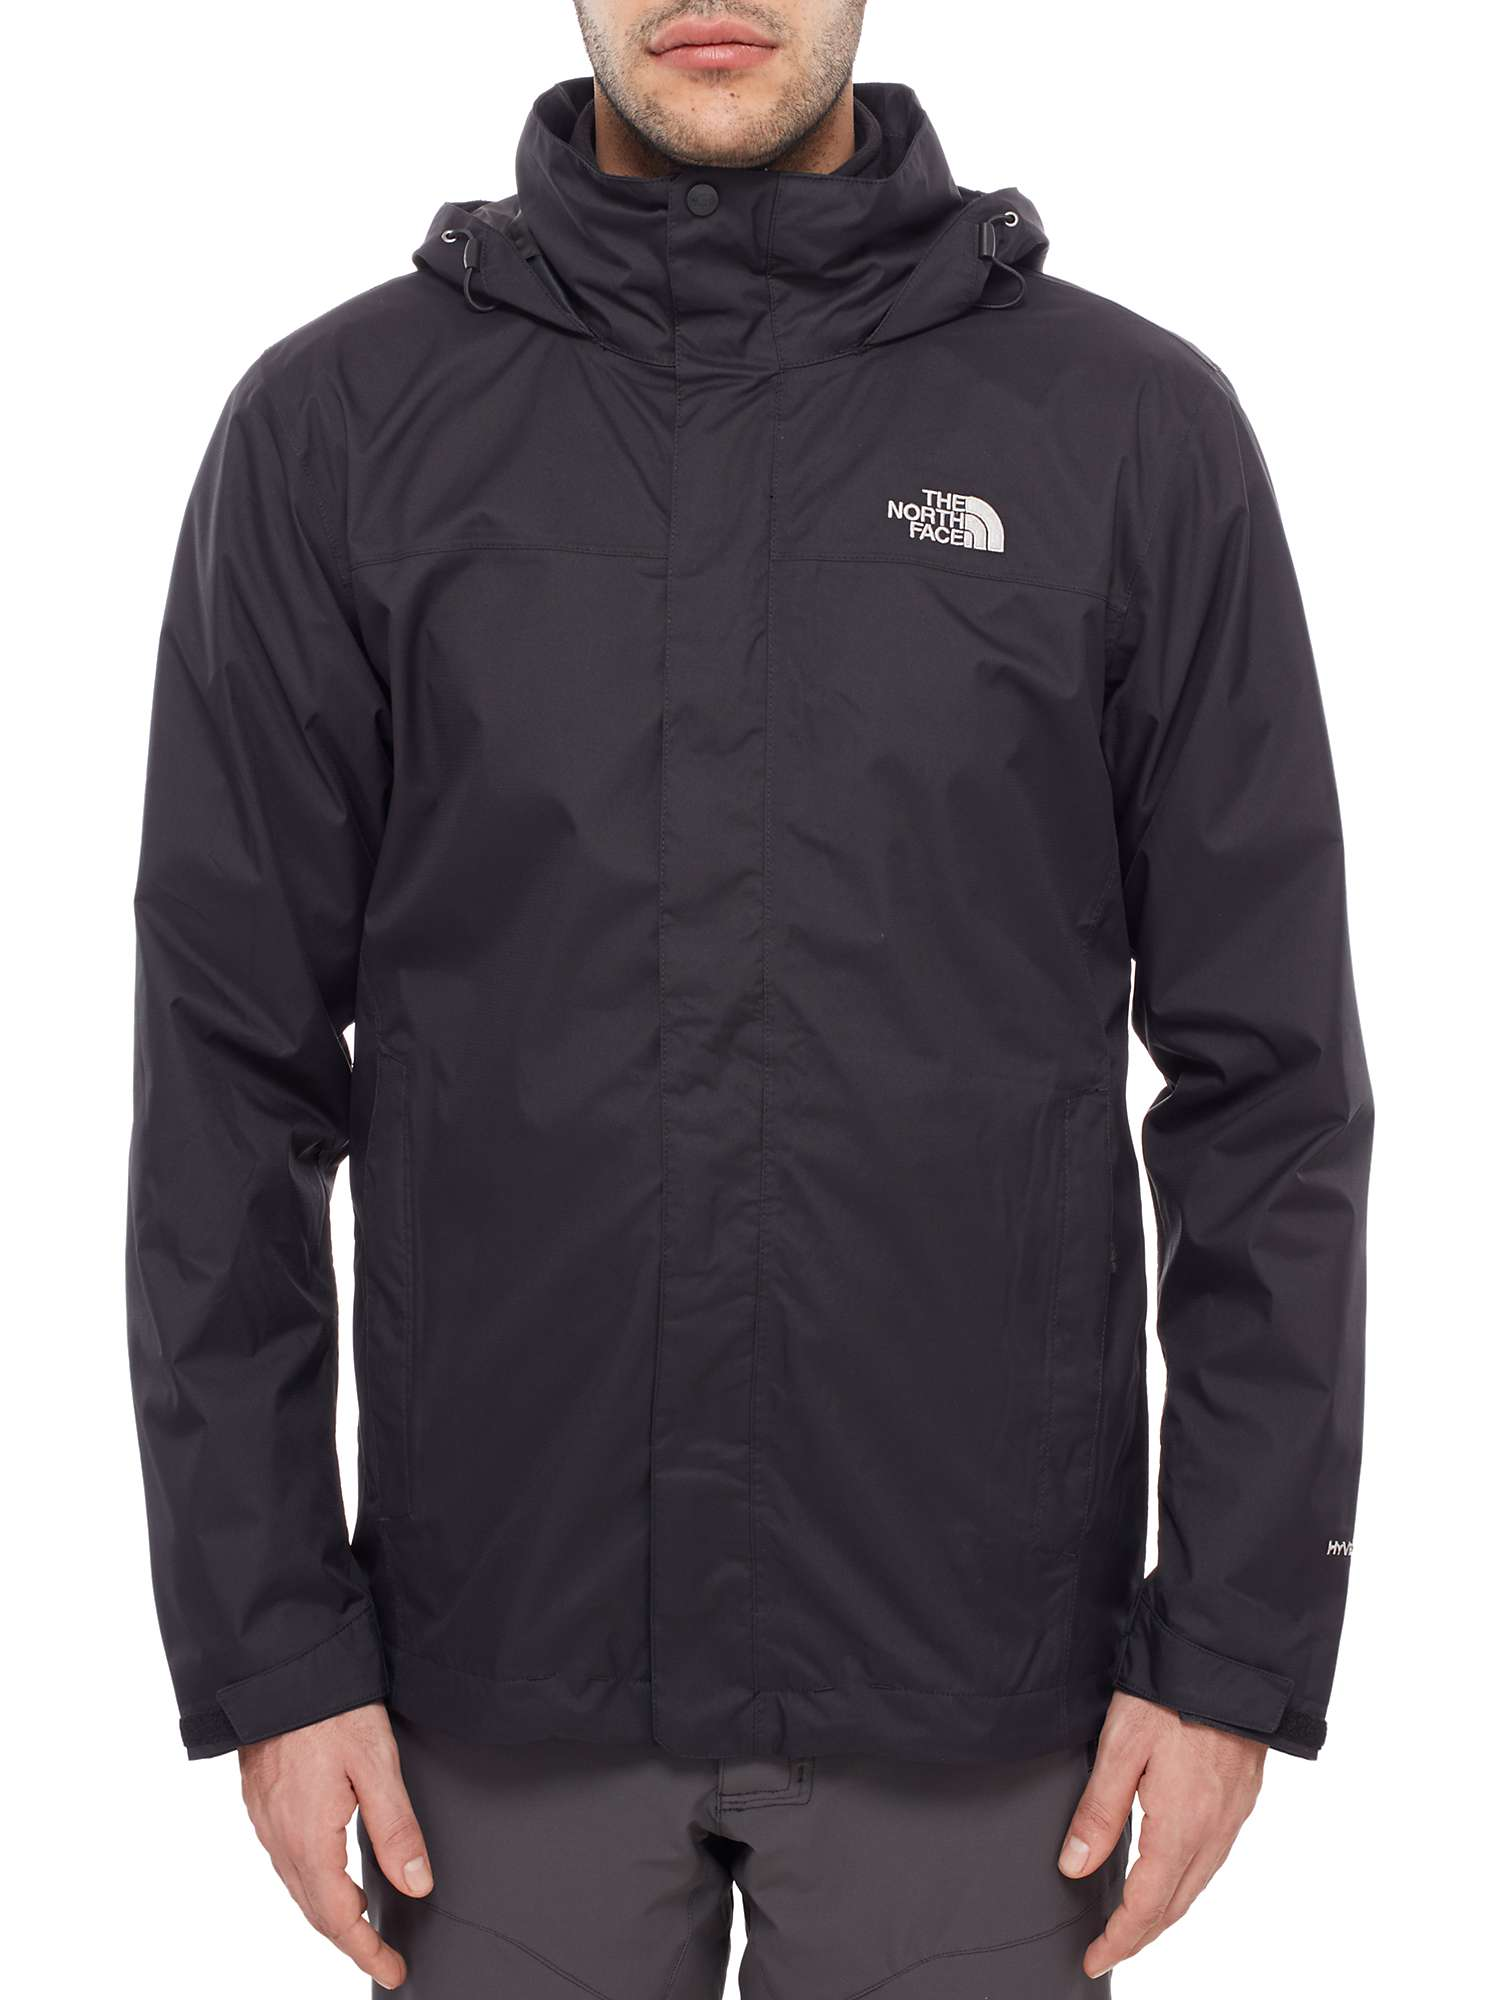 The North Face Evolve Ii Triclimate 3 In 1 Waterproof Men S Jacket Black At John Lewis Partners